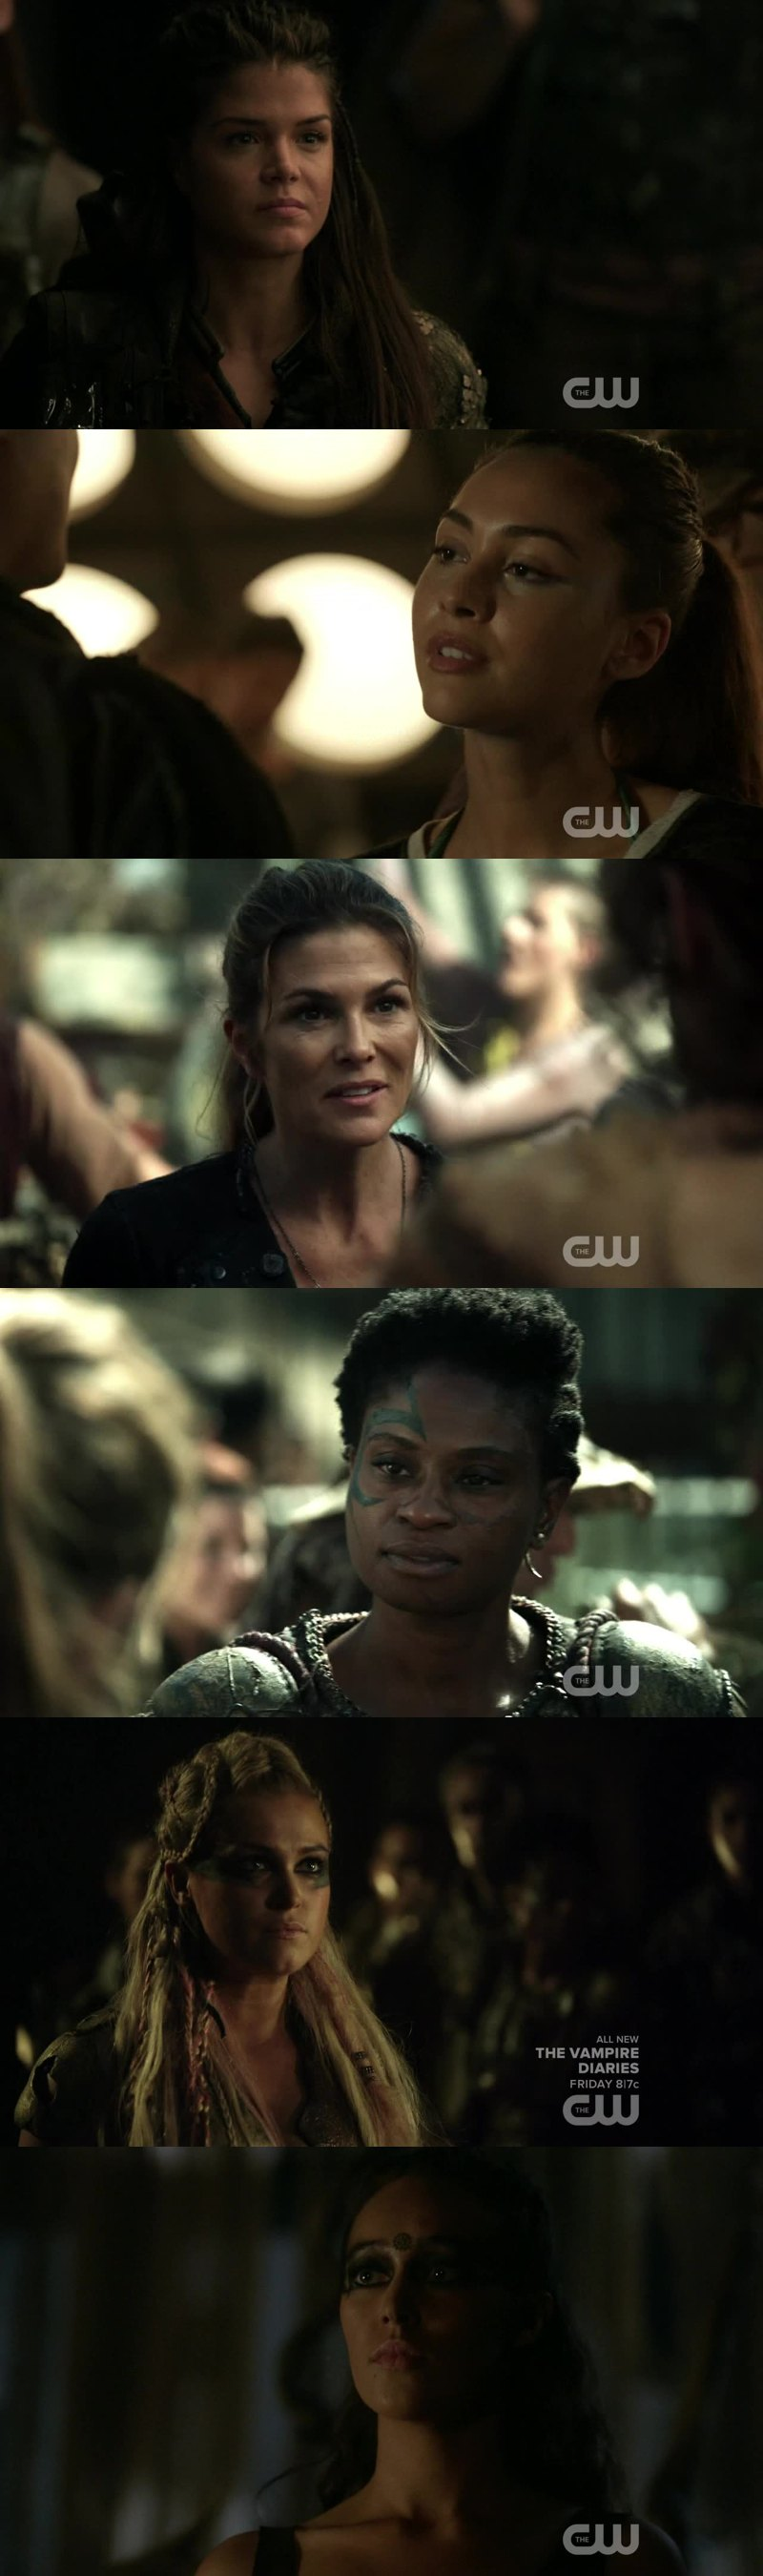 what I like about this show is that all the women on this show are badass they take charge and are fierce fighters. There ain't many shows on TV where majority of the women are leaders so I love it